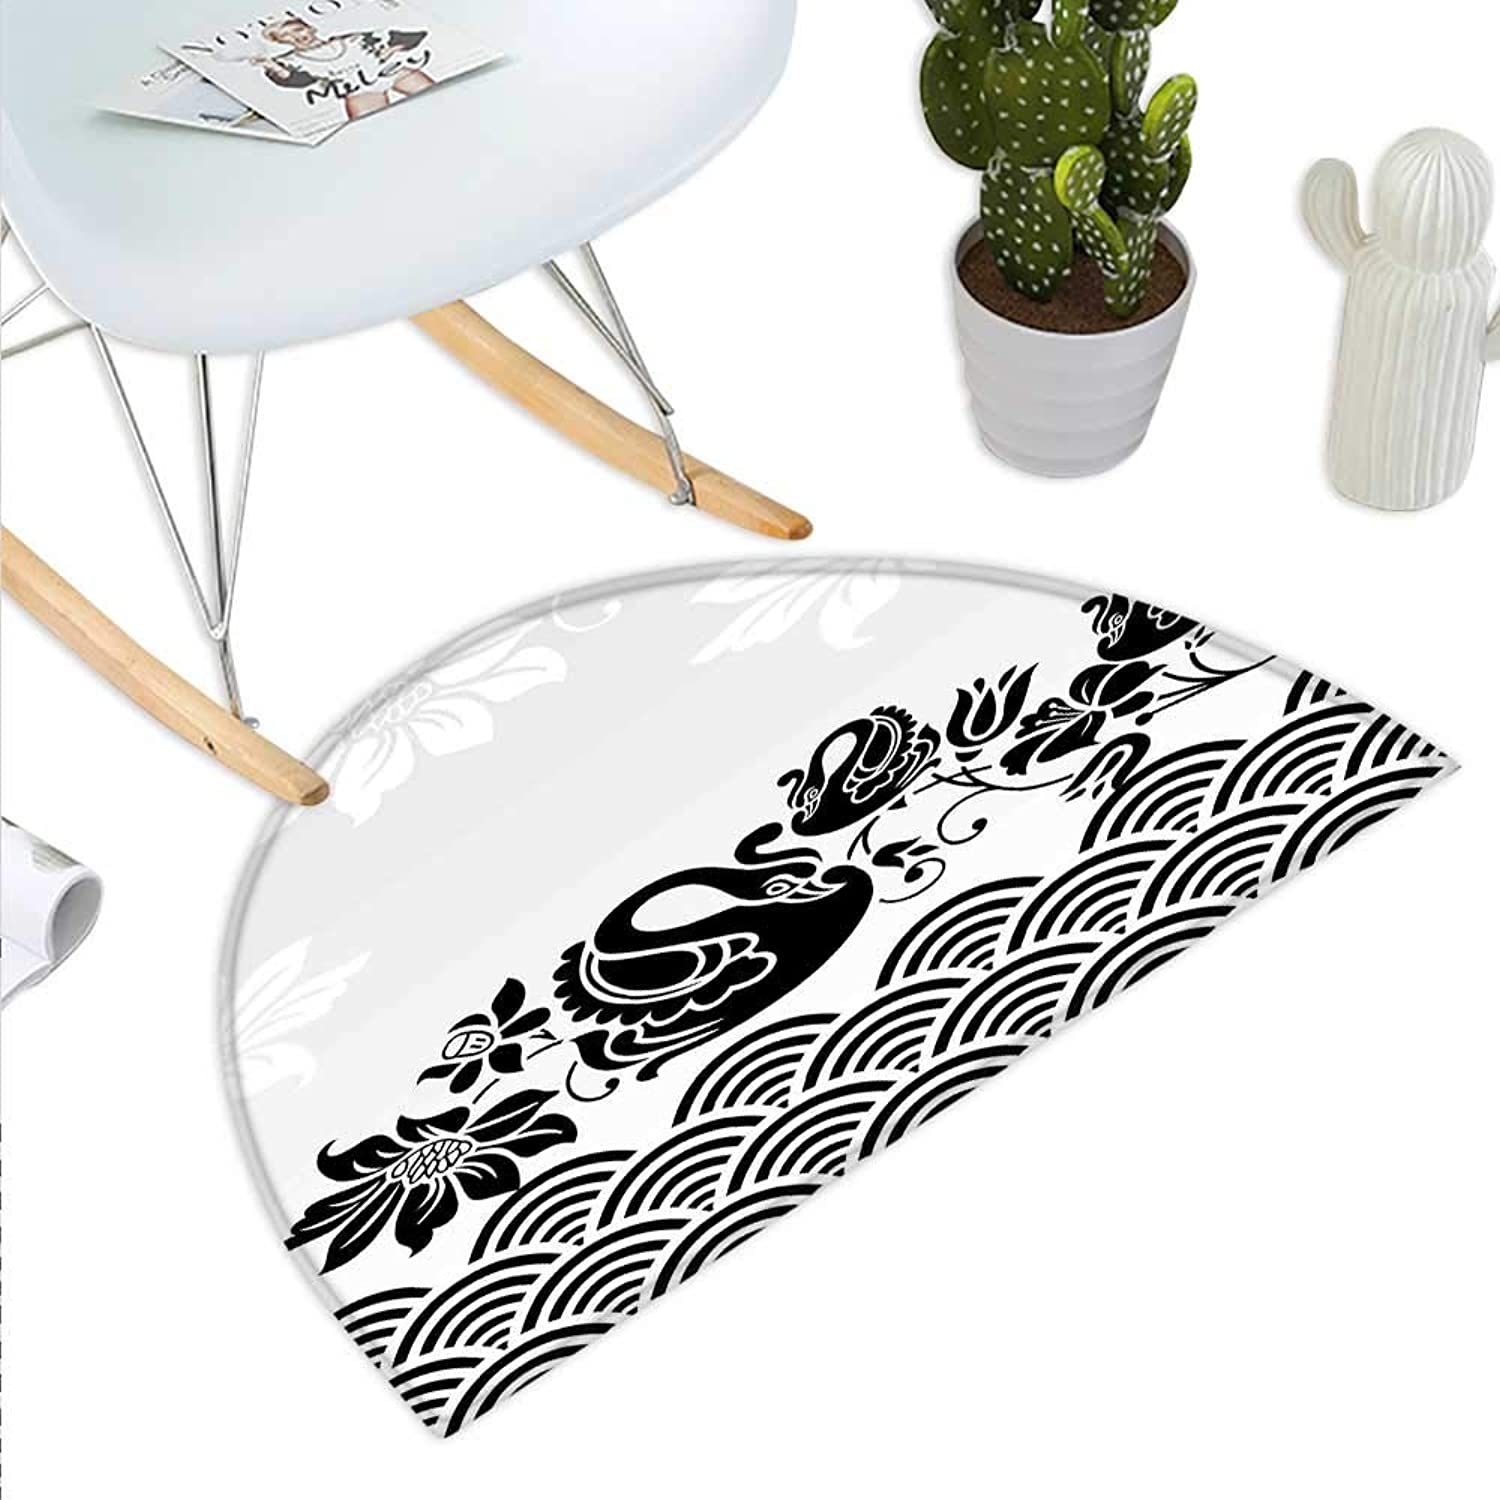 Swan Semicircle Doormat Black Swans Couple Swimming in Abstract Waves with Swirling Blooming Flowers Pattern Halfmoon doormats H 23.6  xD 35.4  Black White